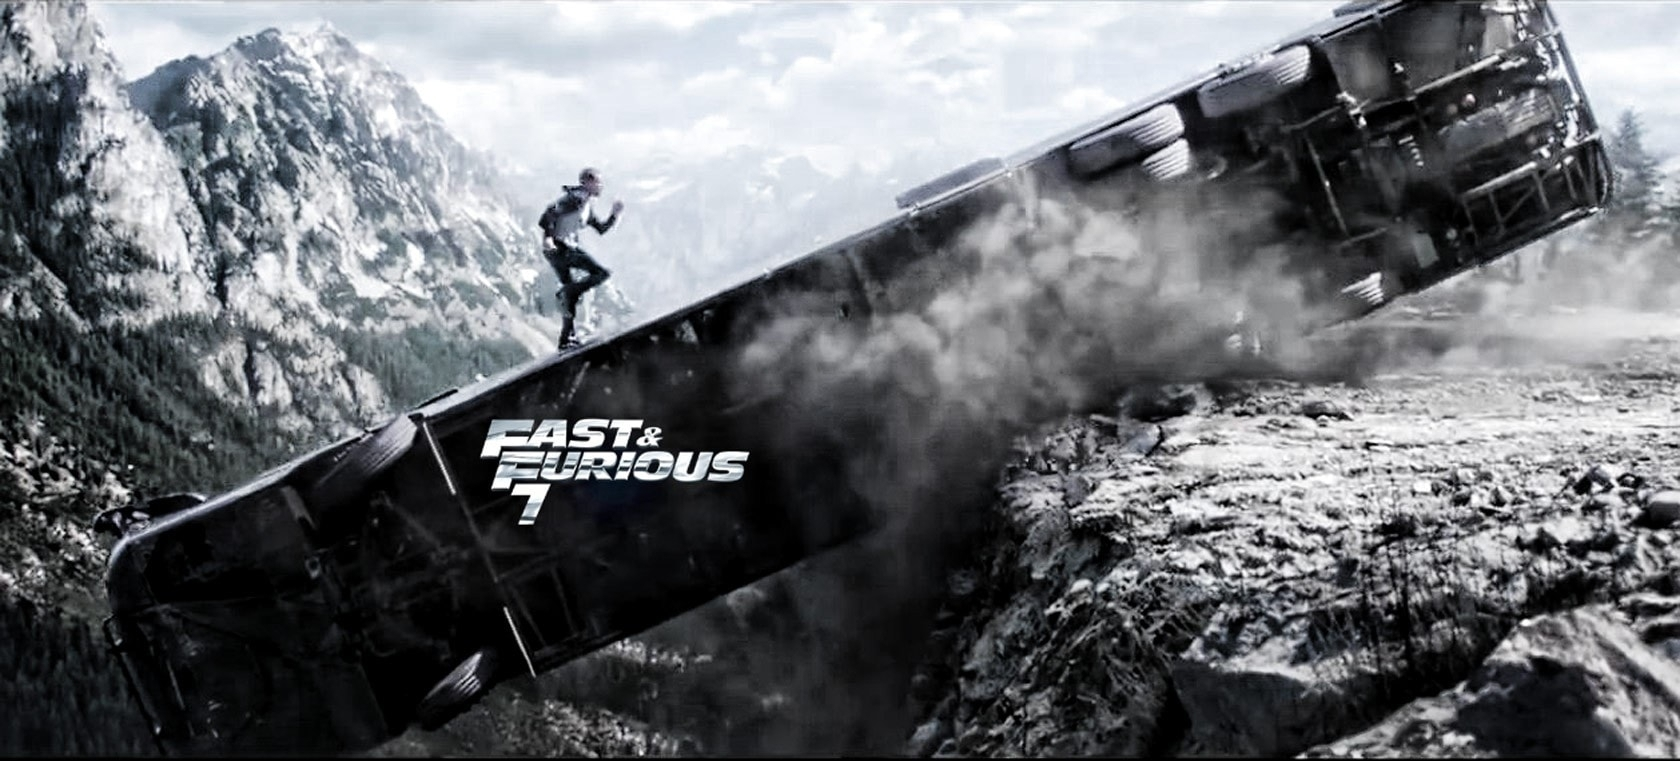 fast & furious 7 hd desktop wallpapers | 7wallpapers